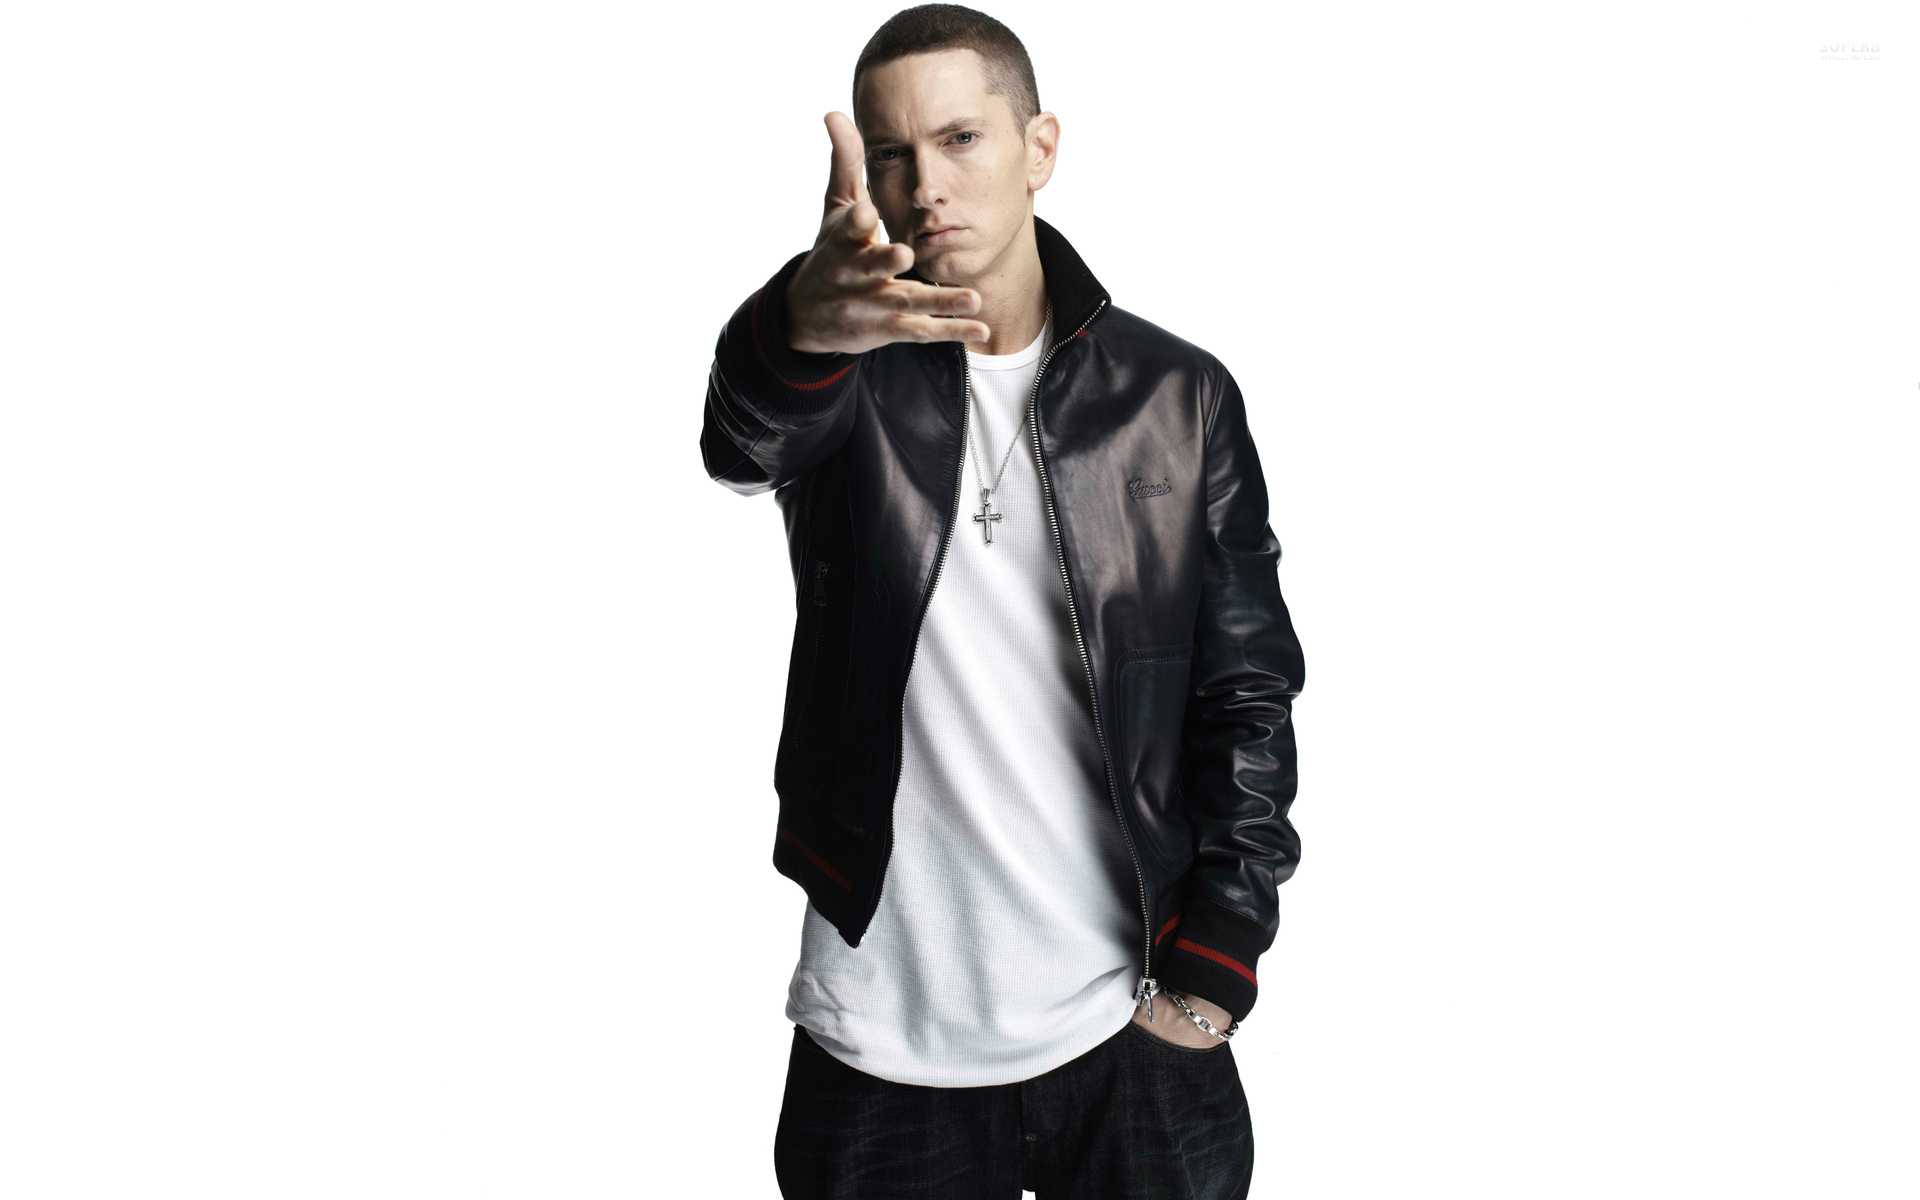 Eminem Wallpapers HD cross